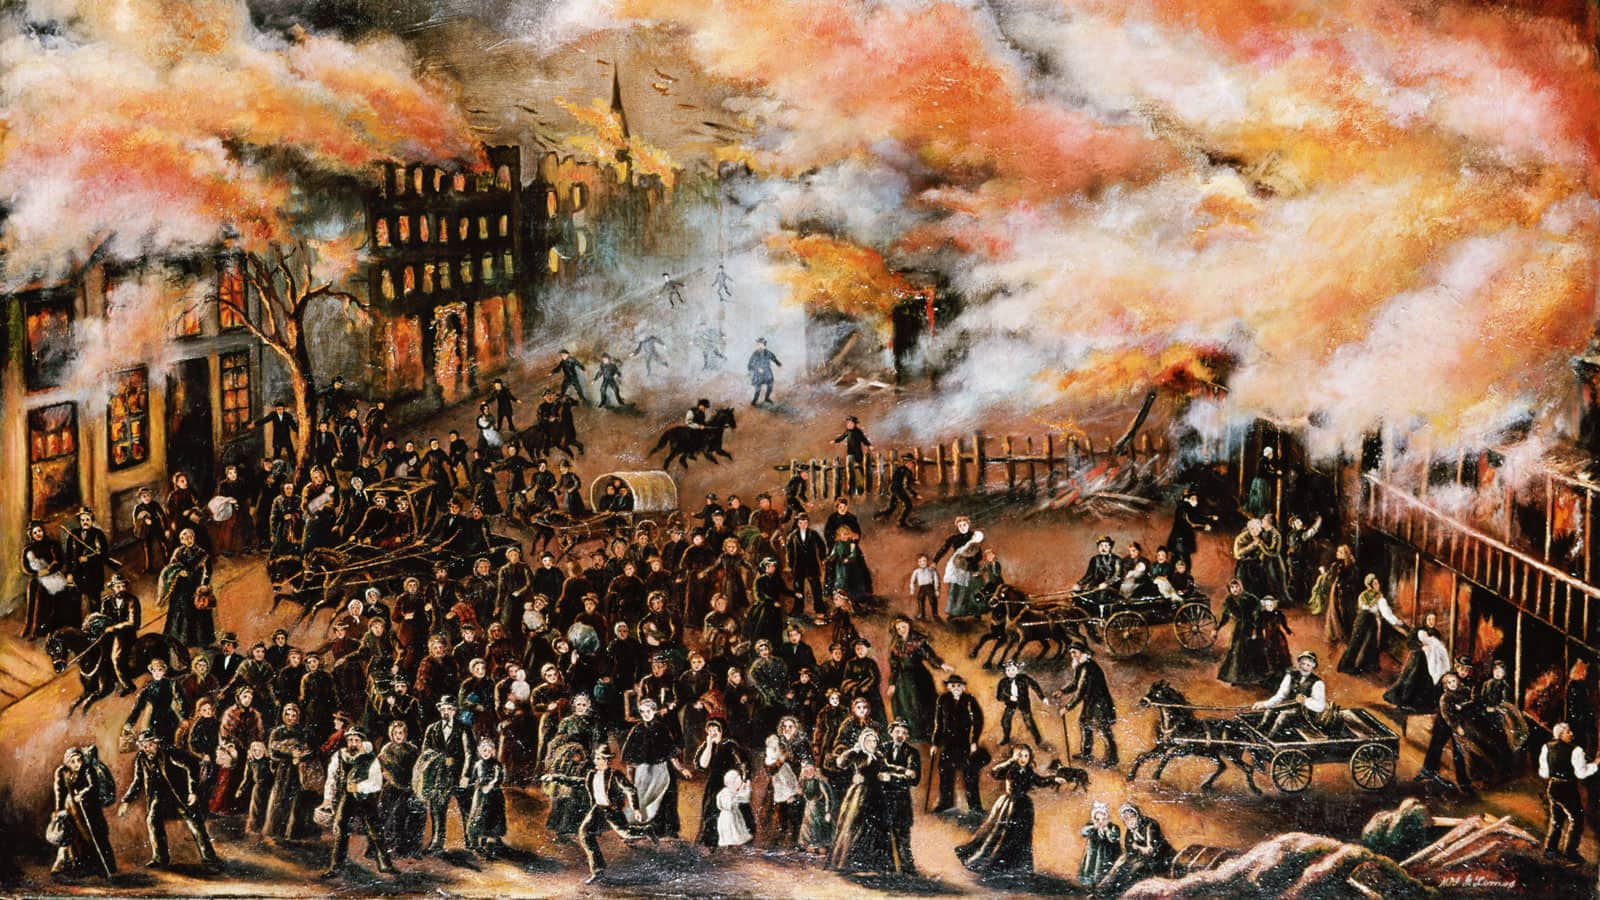 Painting of Chicagoans rushing through streets while buildings are on fire